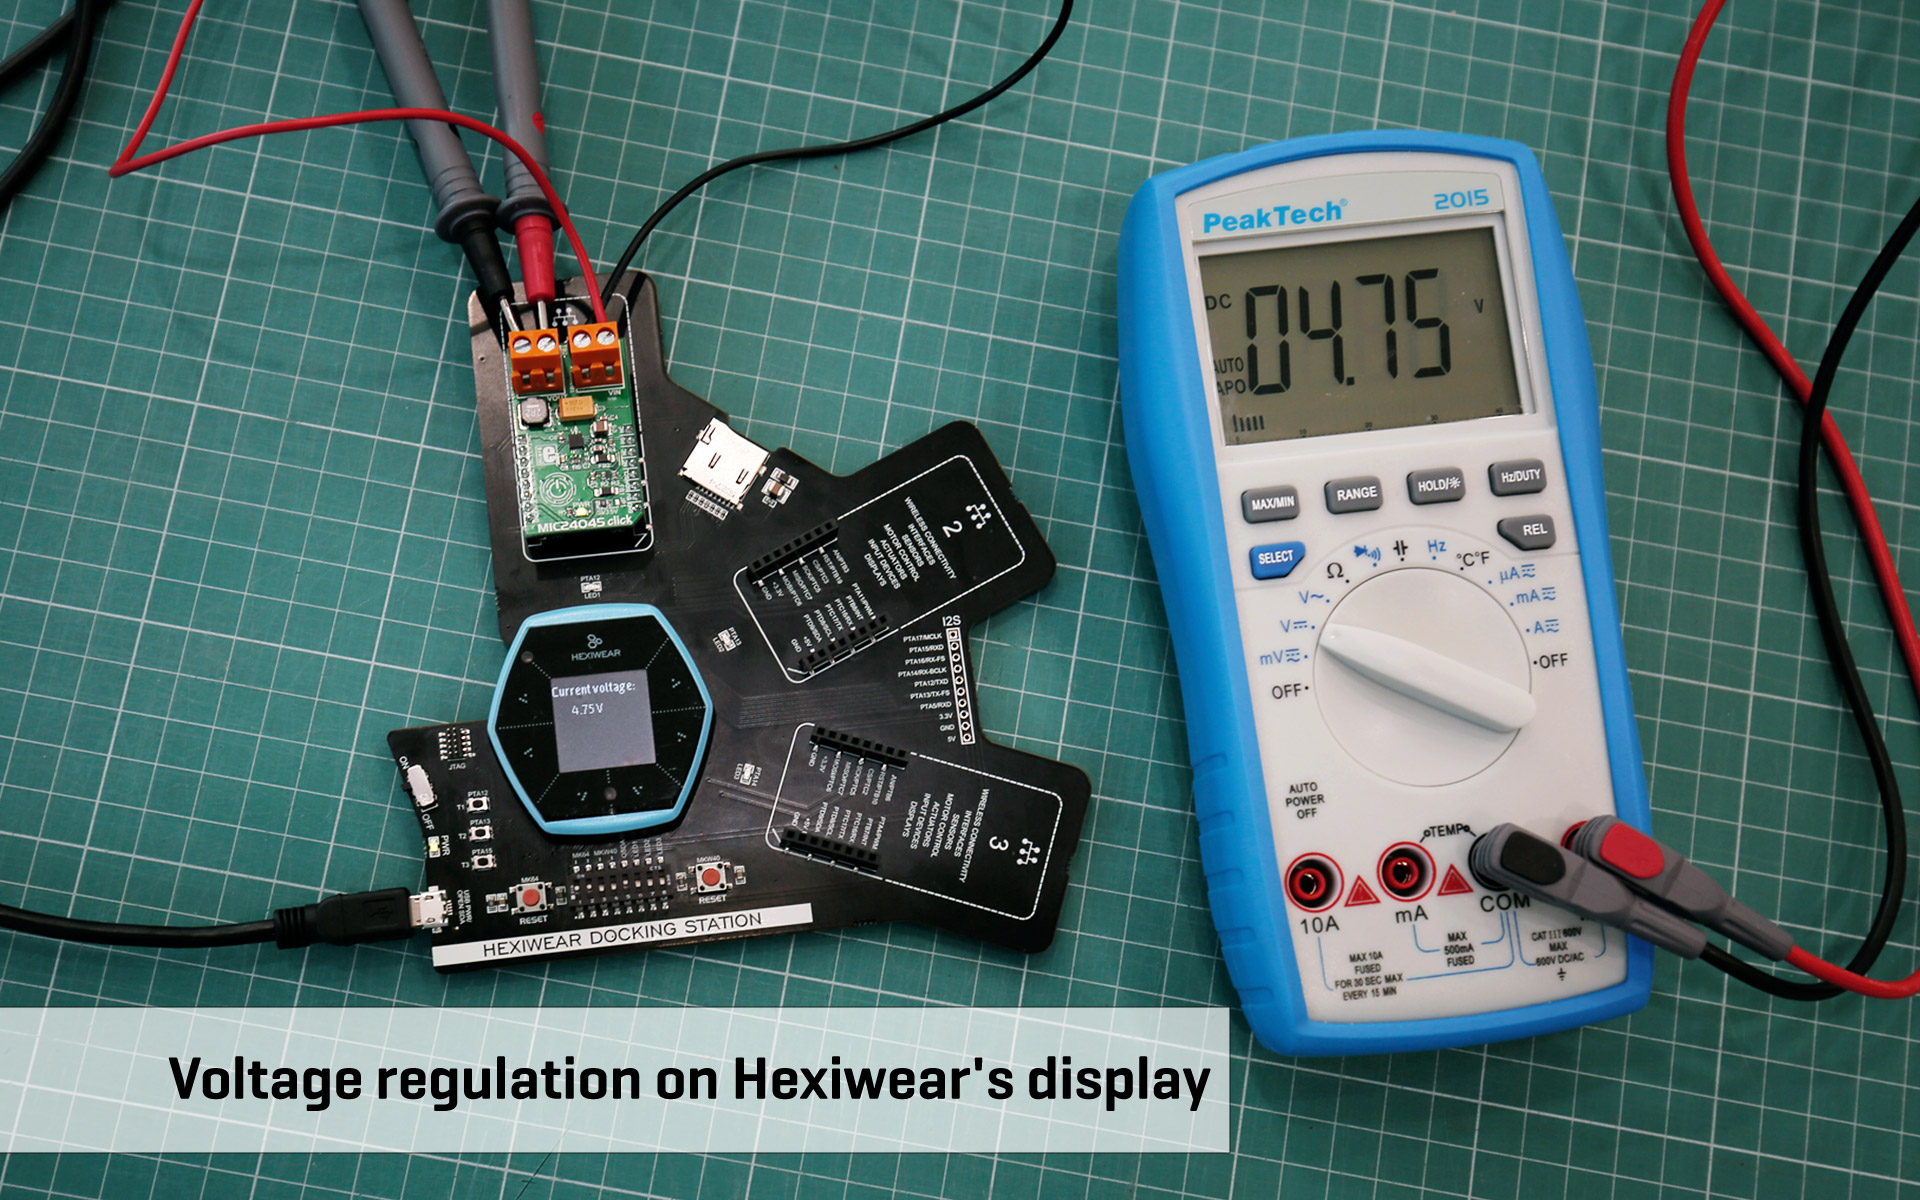 MIC24045 click and Hexiwear - voltage regulation on a display